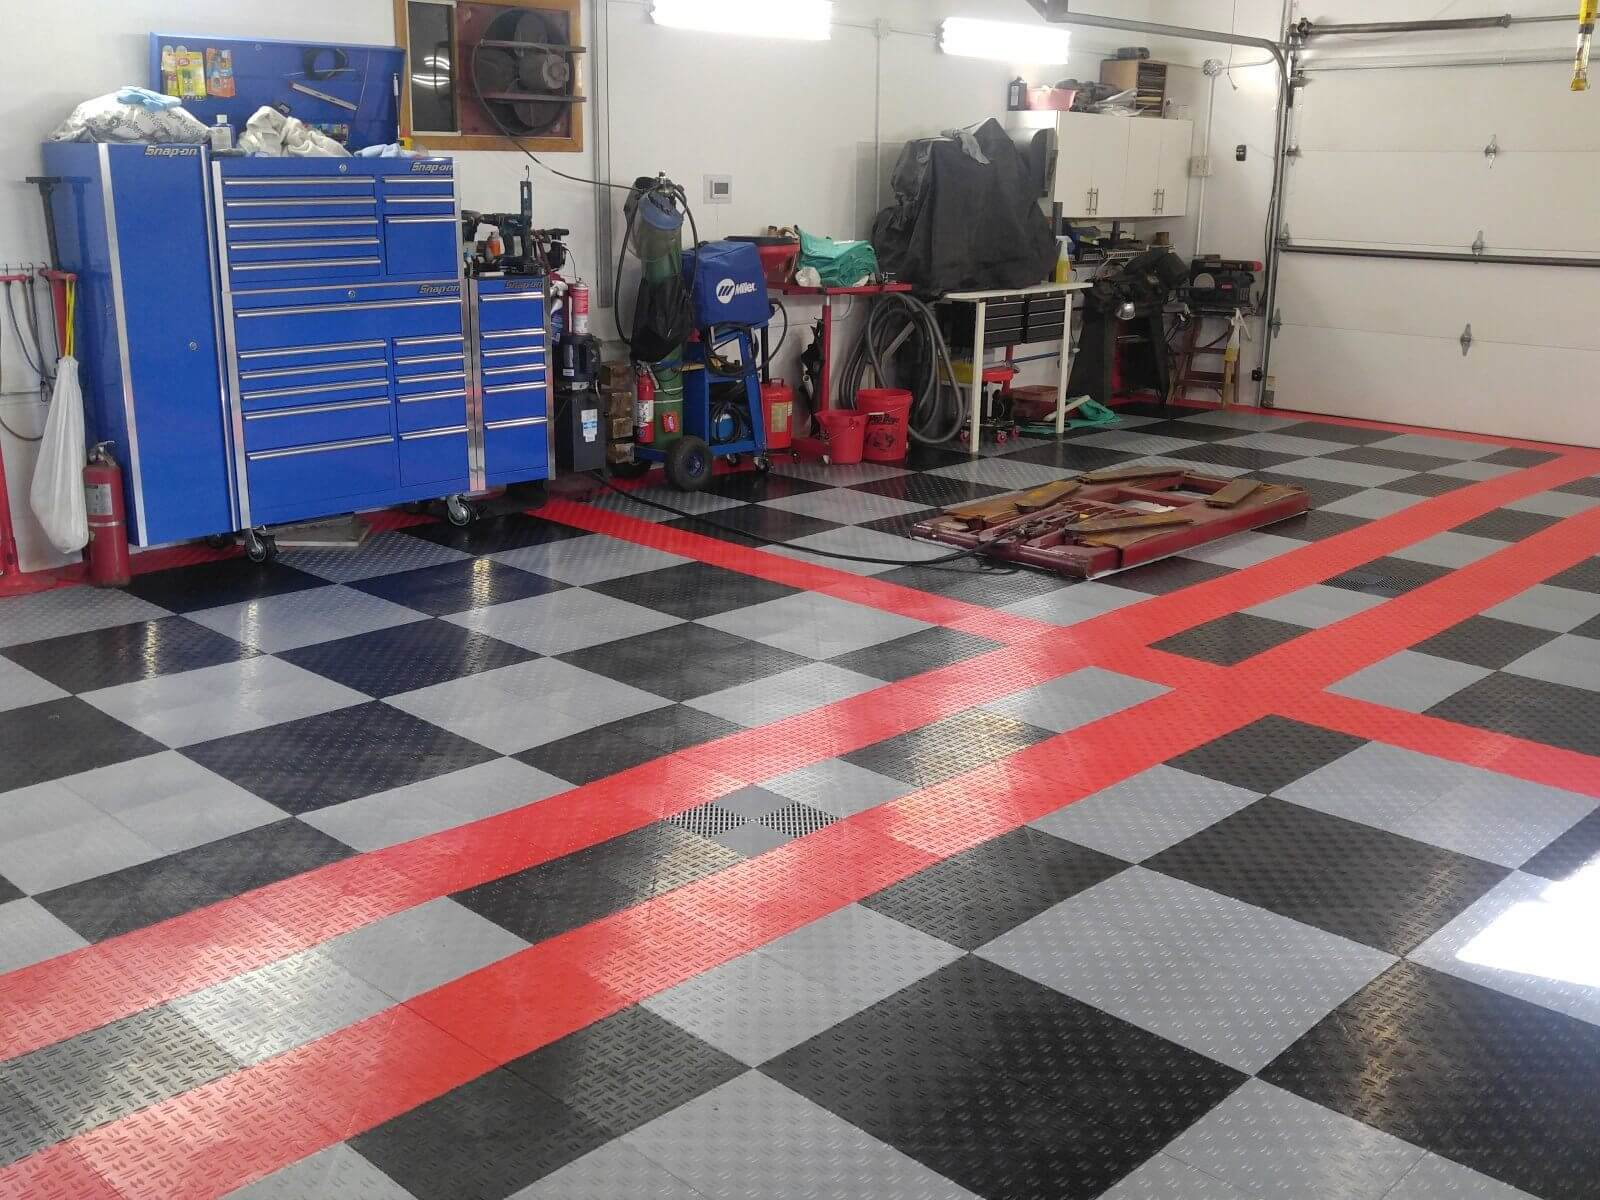 garage floor tiles with tool boxes